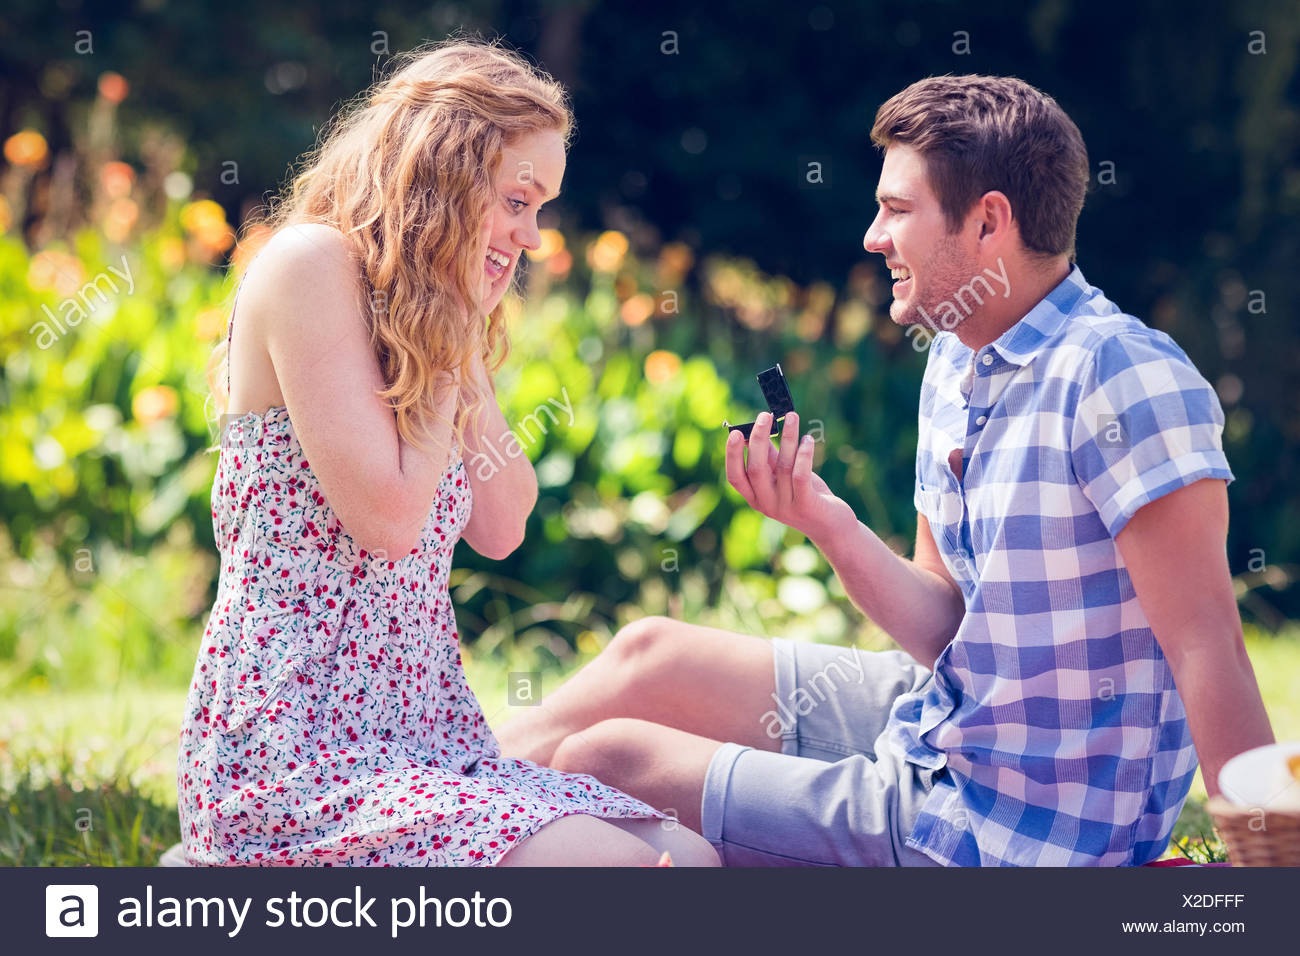 Handsome man doing marriage proposal to his girlfriend Stock Photo